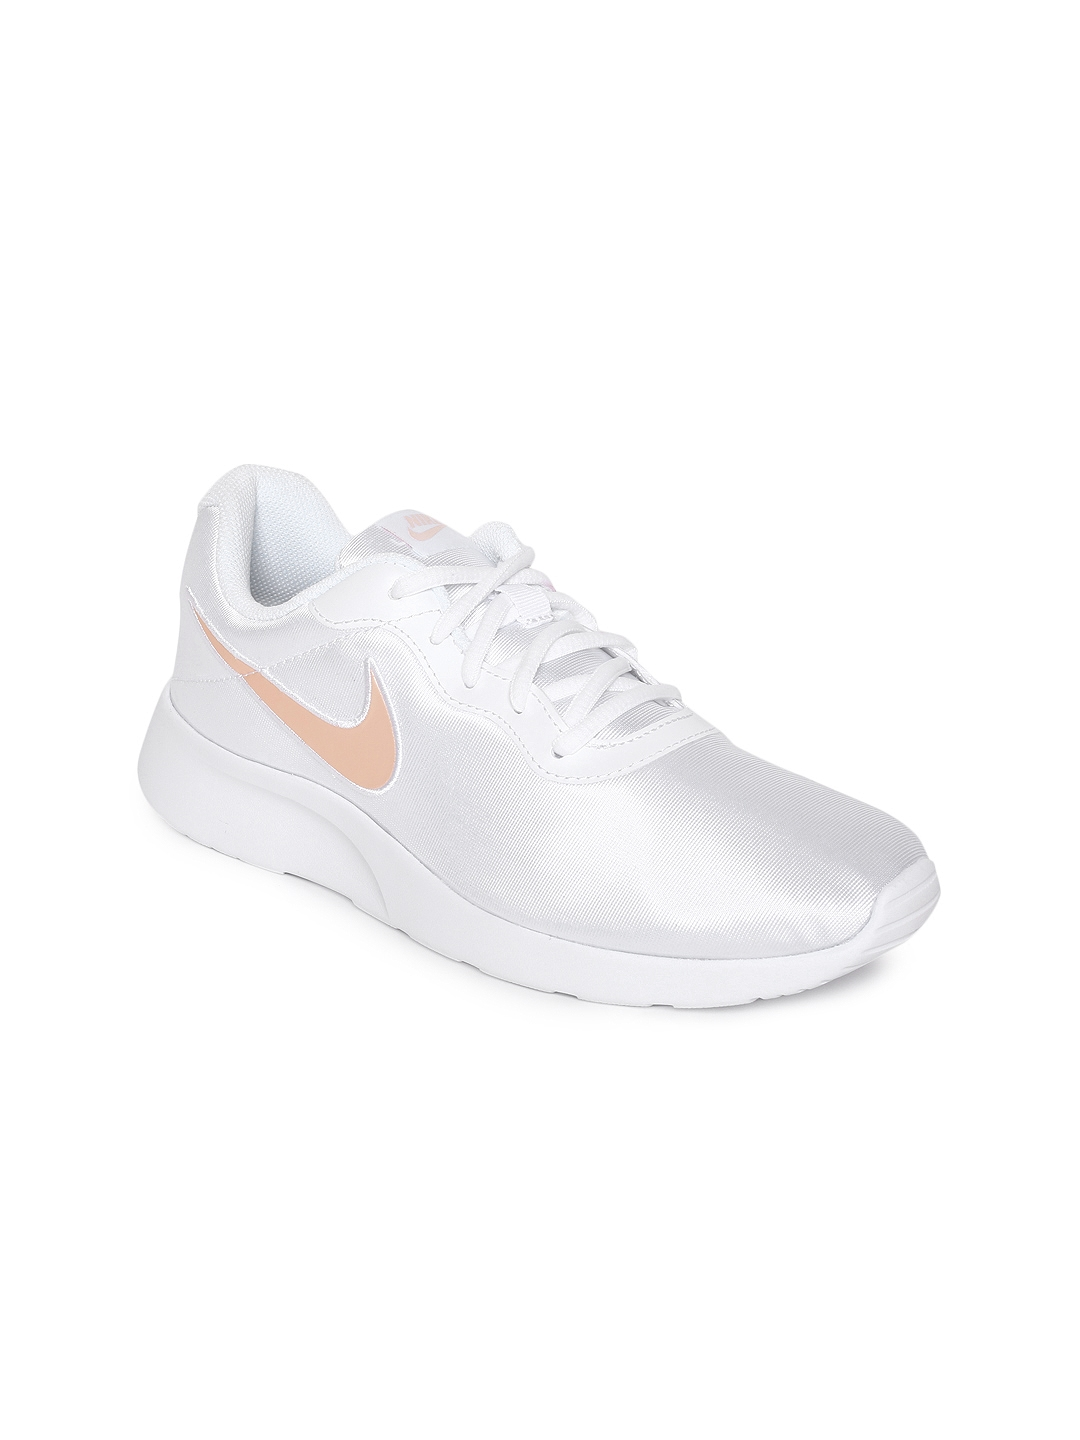 0e2a94b2ba Buy Nike Women White WMNS NIKE TANJUN SE Sneakers - Casual Shoes for ...